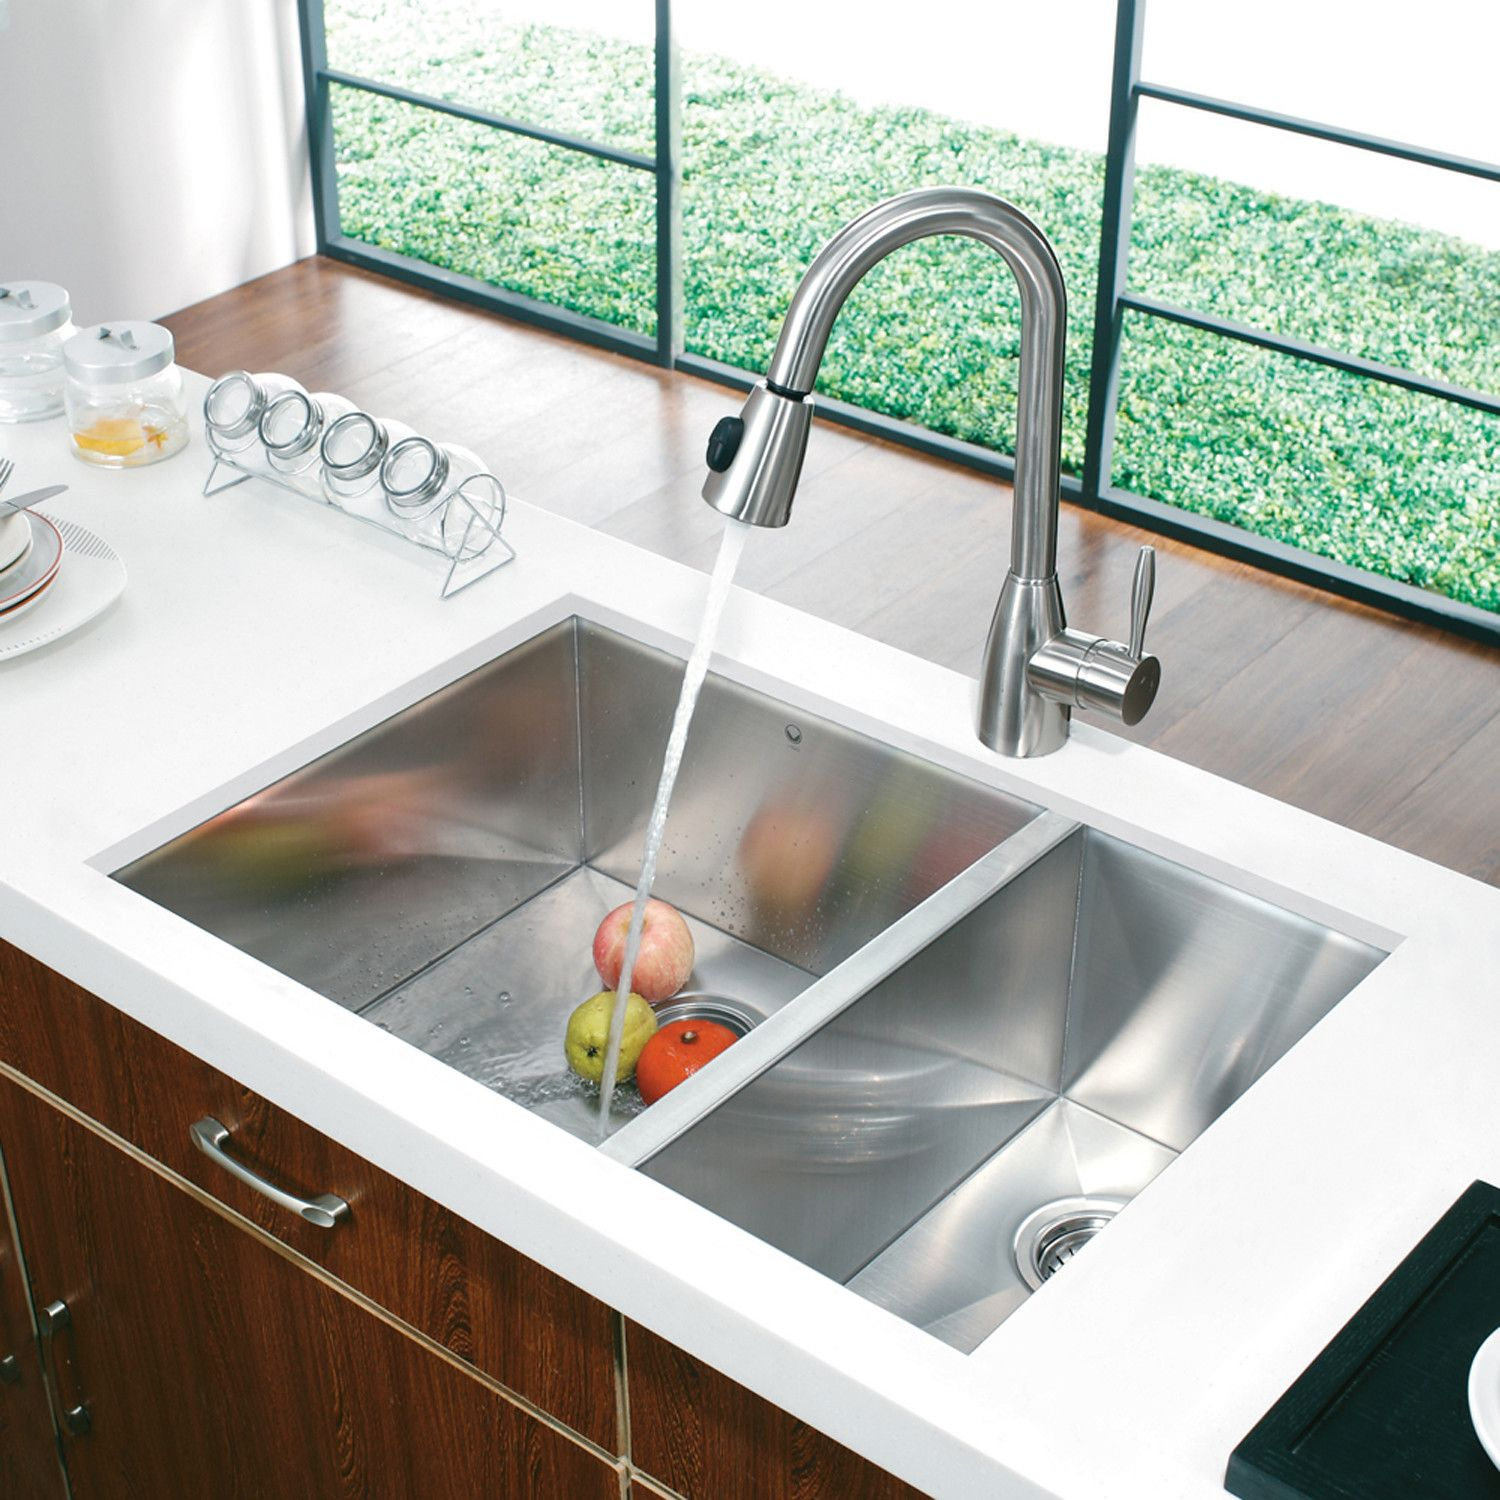 Kitchen Undermount Kitchen Sink With Series Handmade Double Bowl Farmhouse  And Stainless Steel Undermount What Is Undermount Kitchen Sink?